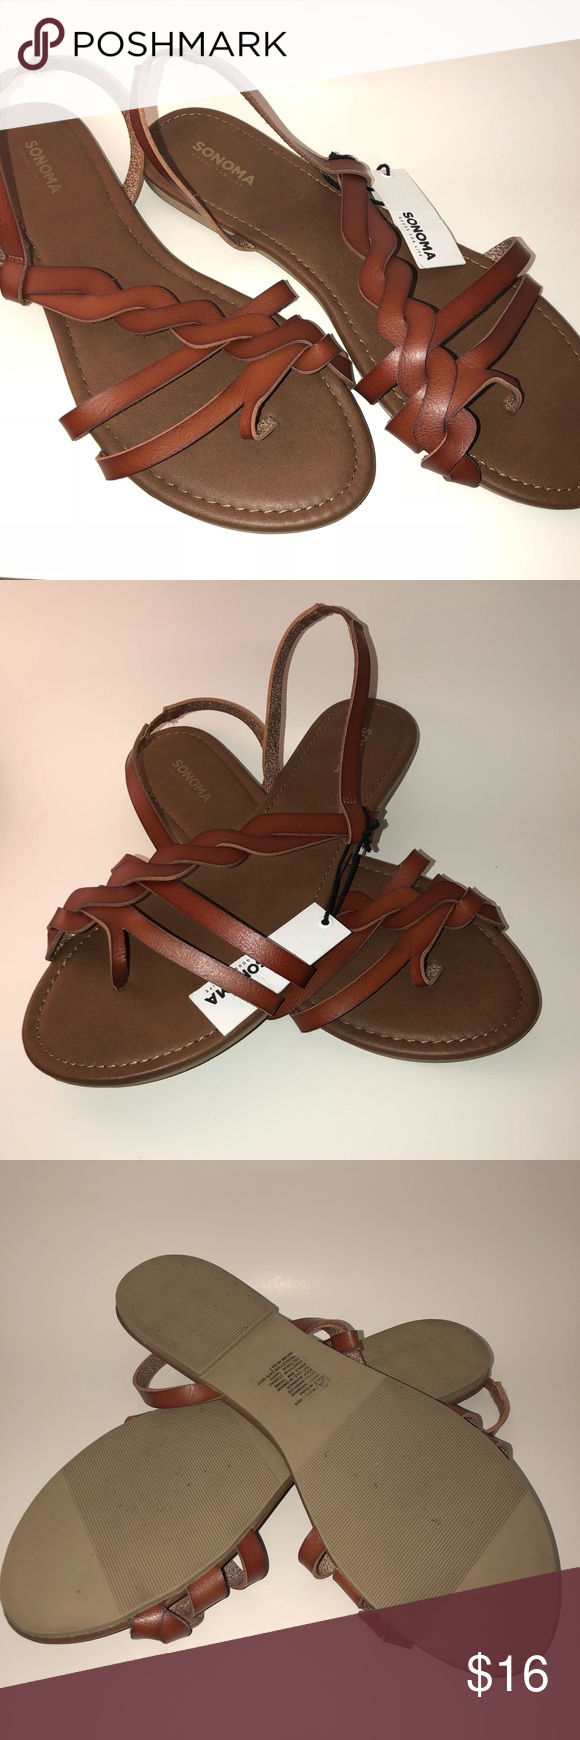 187fd253bdb89 NWT Sonoma Cognac Strappy Sandals New with tags Sonoma Sandals Cognac color  Flats Size 11 Sonoma Shoes Sandals